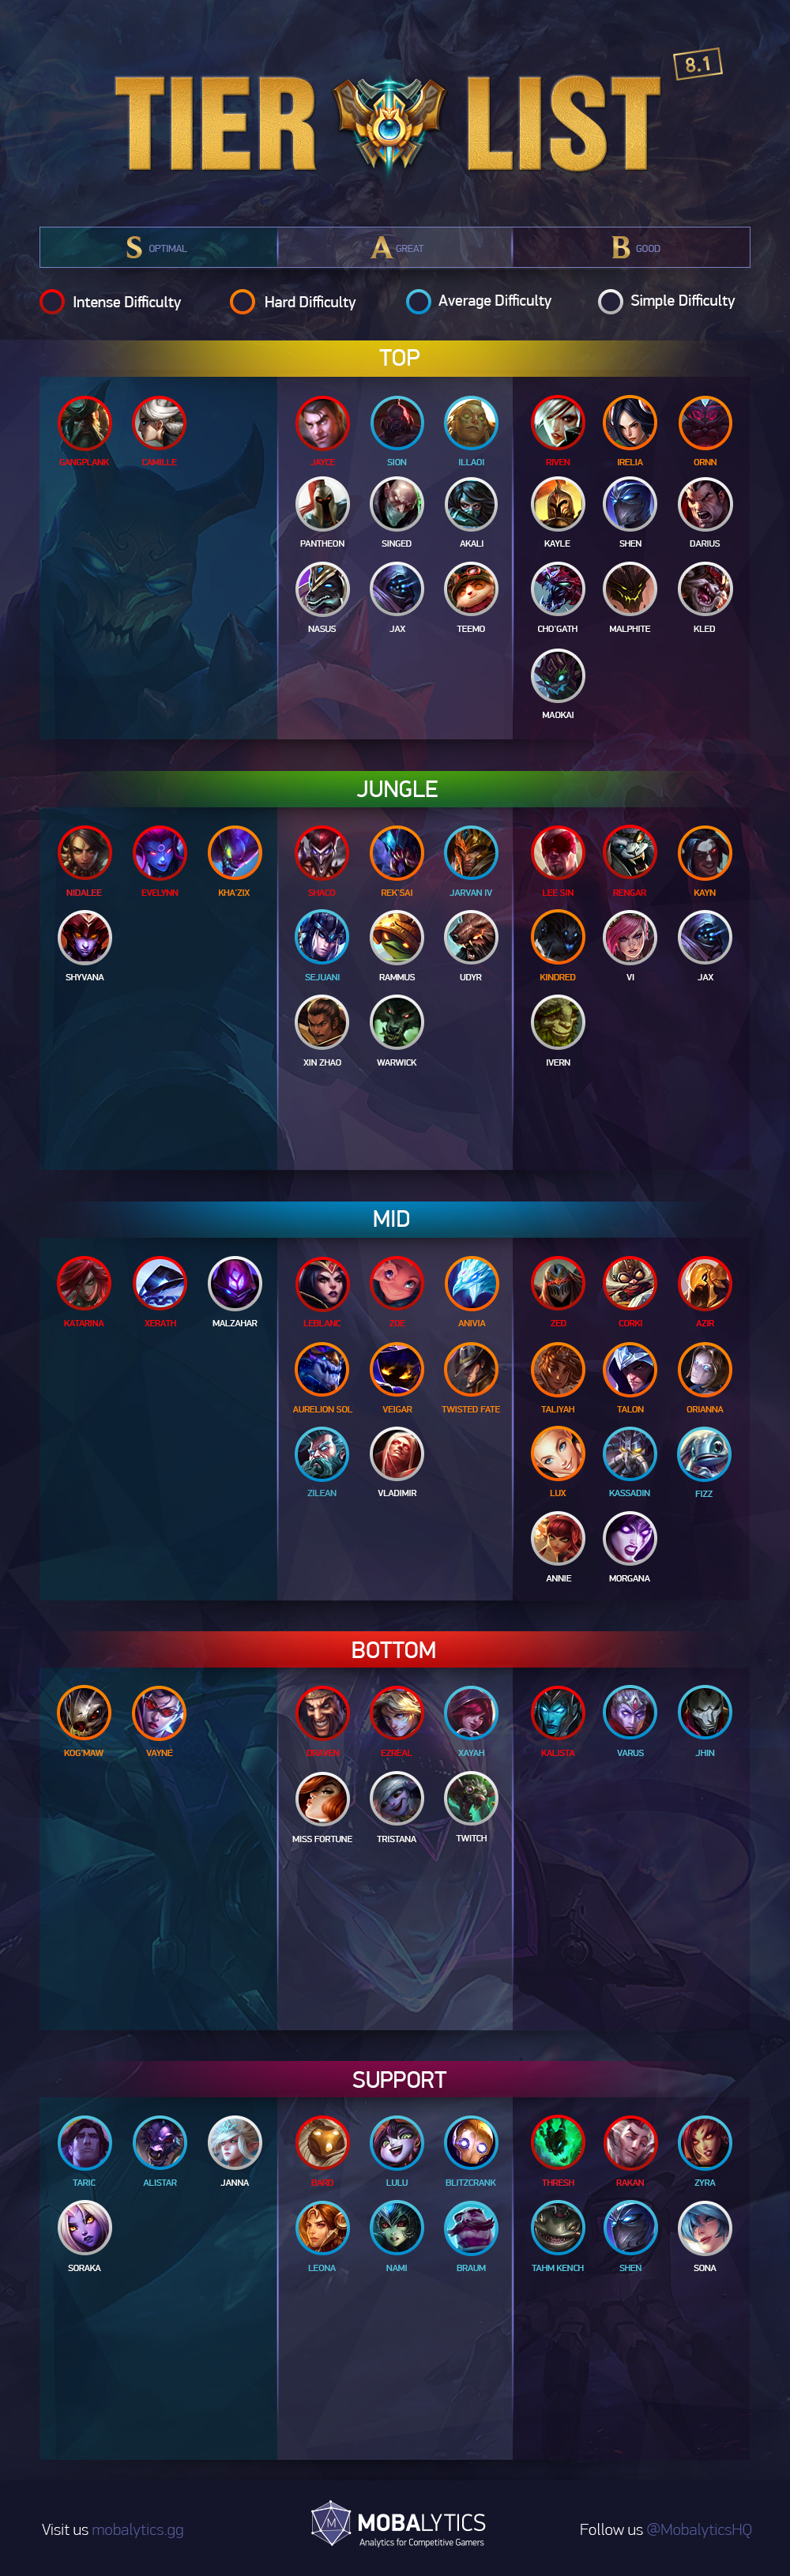 League of Legends Patch 8 1 Tier List for Climbing Solo Queue